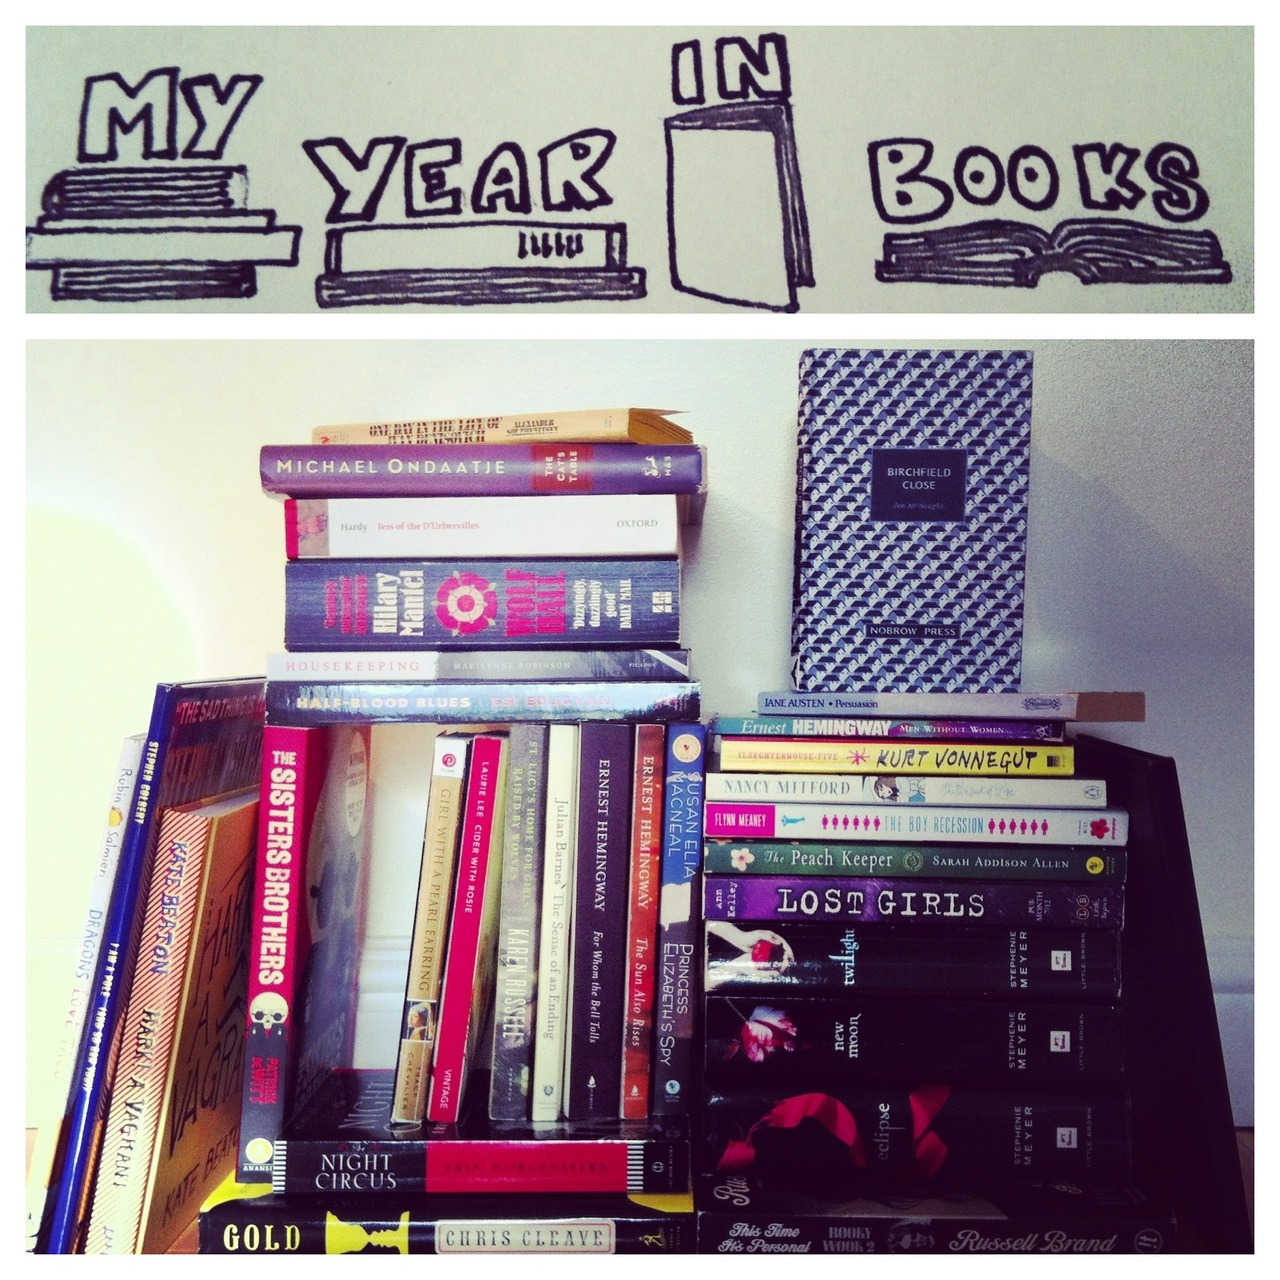 hemmingwhale:   My Year In Books (a visual approximation) This year I pledged to read fifty novels. As we close in on December 31st, I'm almost there (46!), and determined to finish. It started as a simple volume challenge, and one I thought I could easily succeed at. I've always read a lot; it was my job when studying English Lit for my undergrad, and my escape from my 'real world' corporate publishing job. The project has taken on new meaning as I contemplate the 2012 list that has emerged. I've never previously recorded what I read and the simple task of listing my progress is quite revealing (yes, you can see both Twilight and Tess of the d'Urbervilles in that pile). The most important rule has become: hide nothing. Full list to come.  The above image includes only those books readily available on my shelves, not pictured: library books, lent books, e-books, being-borrowed books.   This is a solid, well-rounded list if we say so ourselves. However we need to give a particular shout out to how you managed to shelve The Sisters Brothers in such a way that it reaches the same level as the books on Ernest Hemingway's row! These are some solid construction skills.